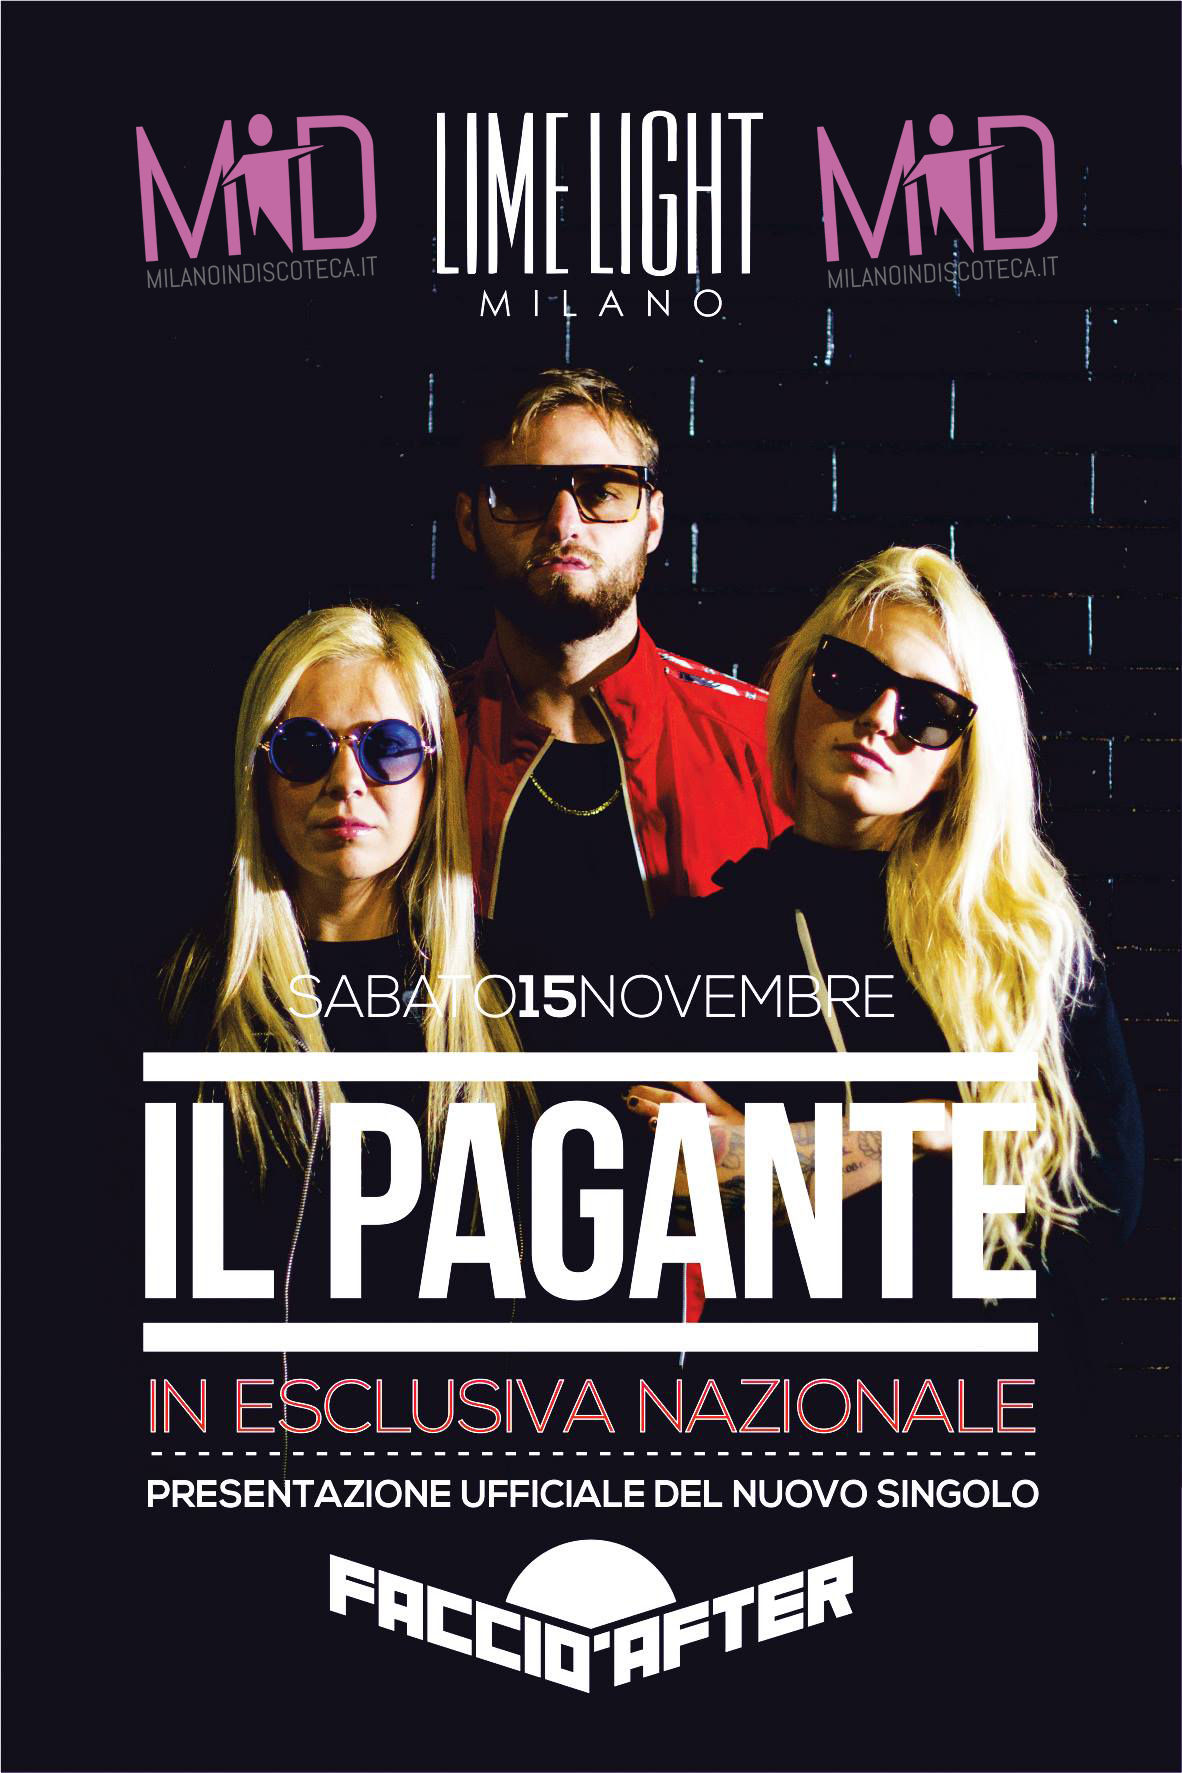 Sabato il pagante limelight milano info 3282345620 for Disco in milano